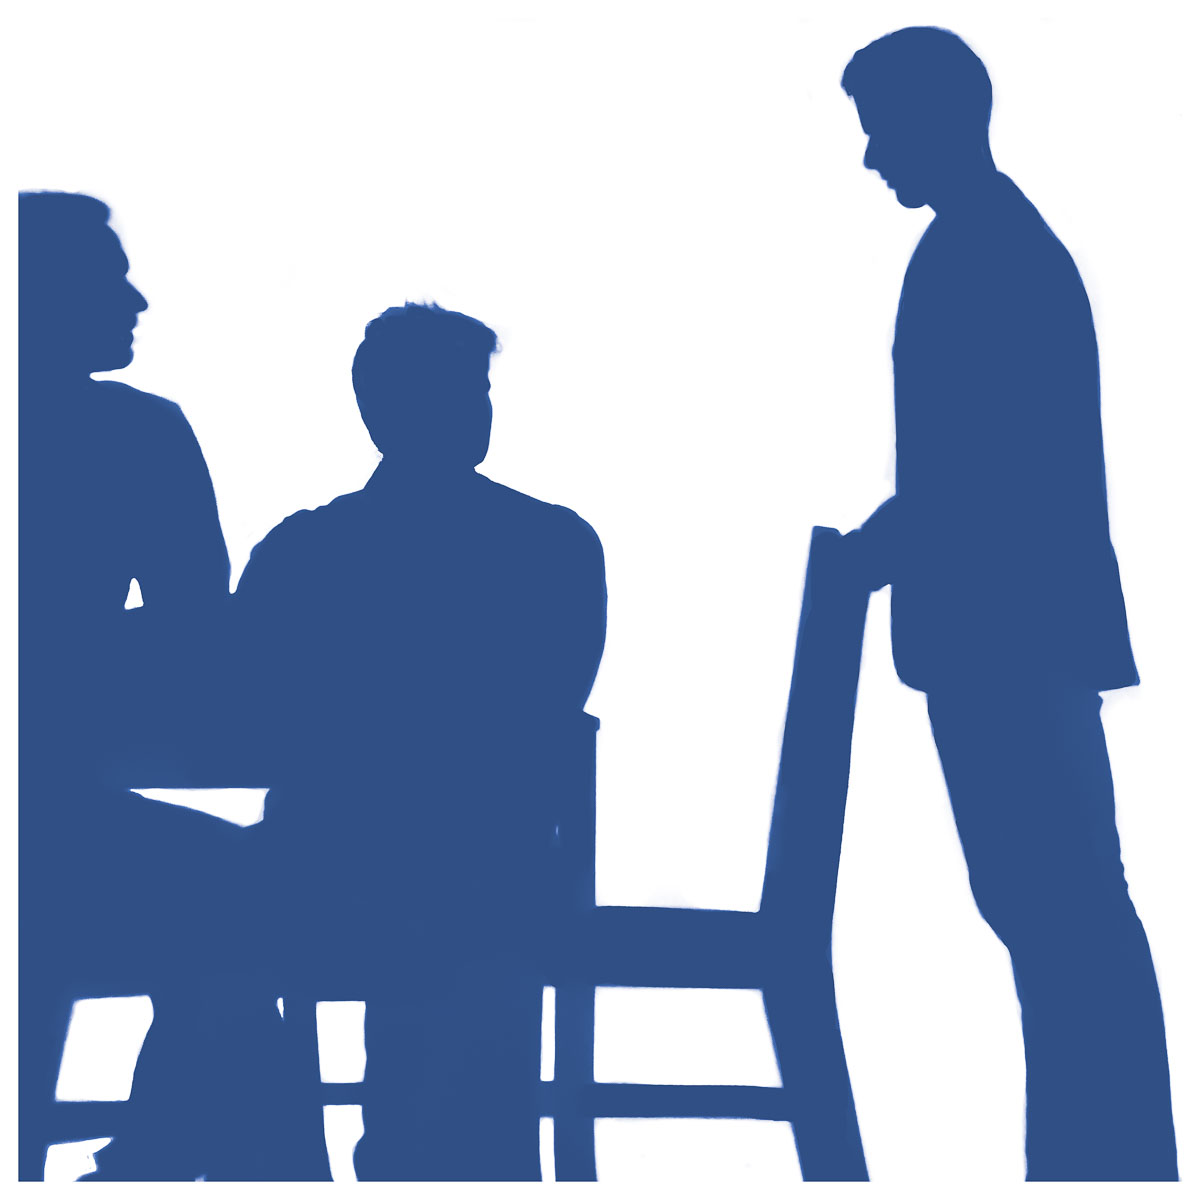 Blue silhouette of a man reaching for chair and 2 men sitting down looking at him